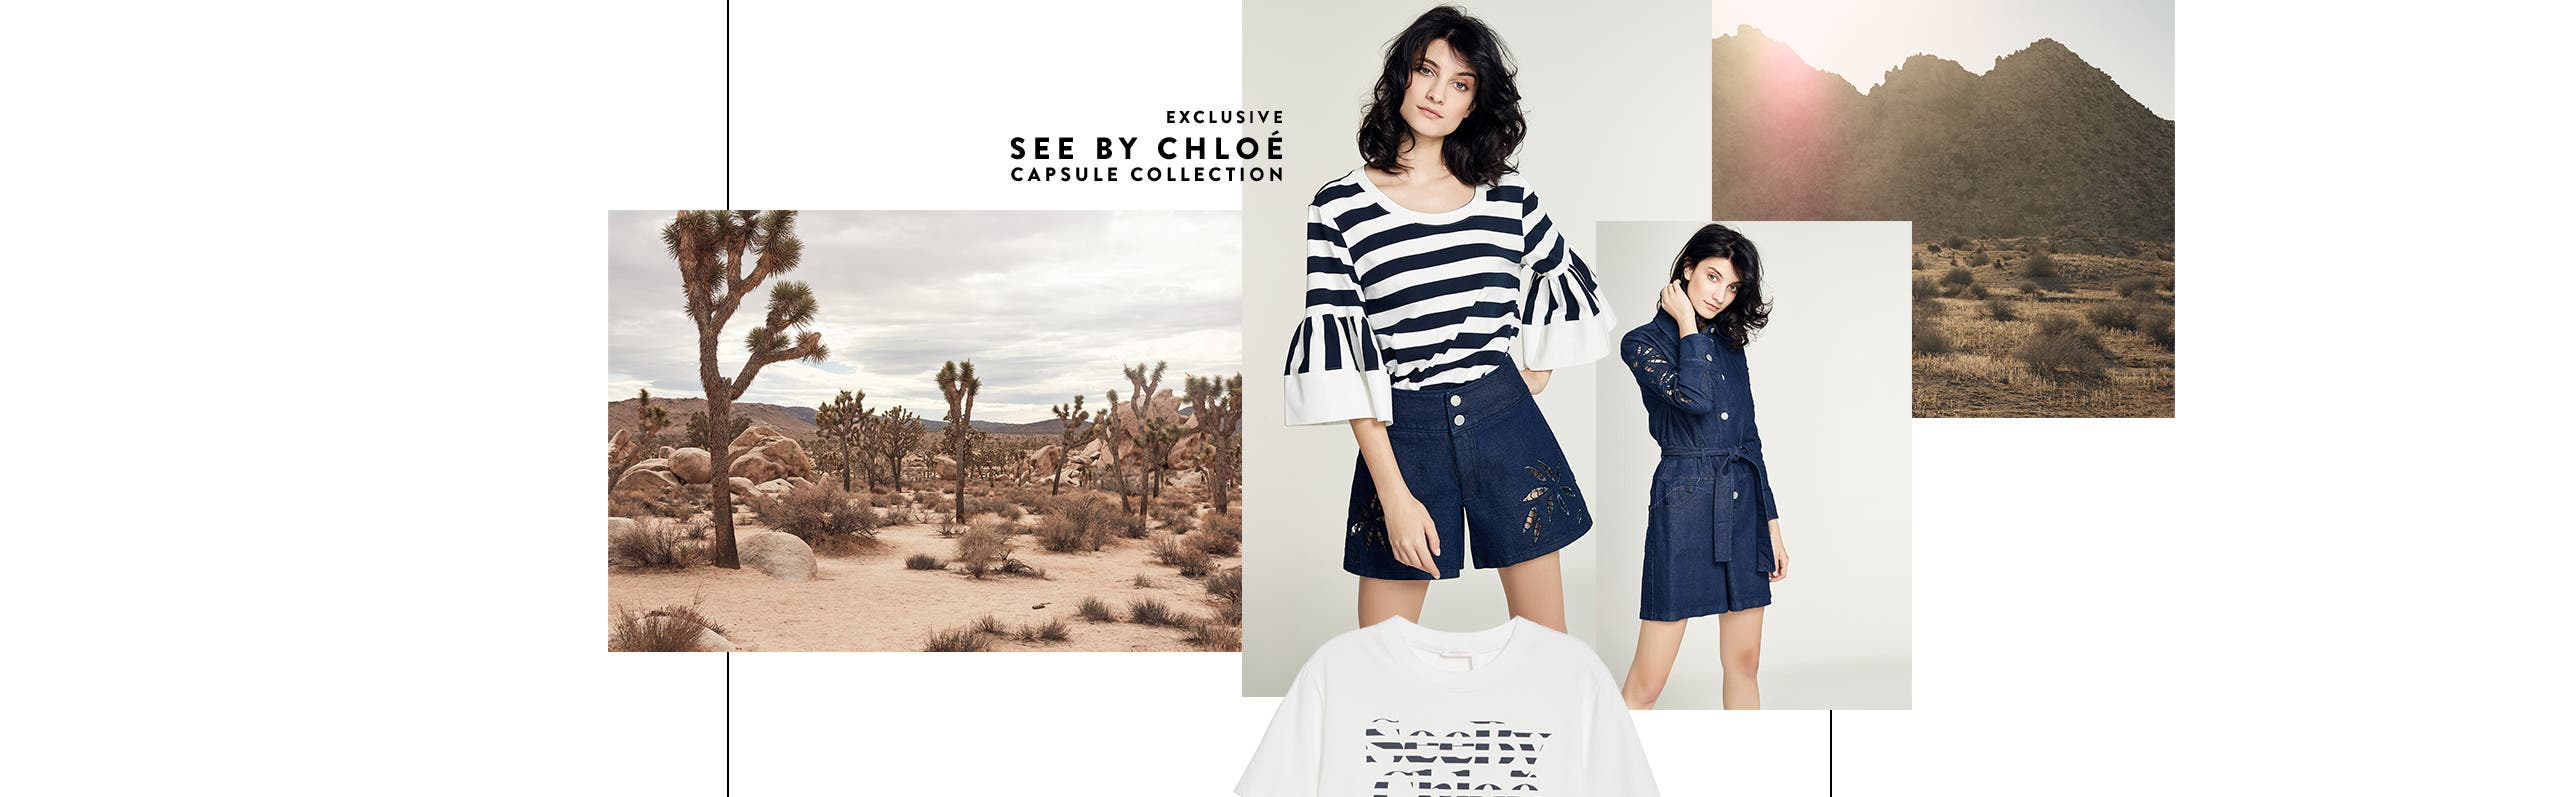 New now: See by Chloe apparel.